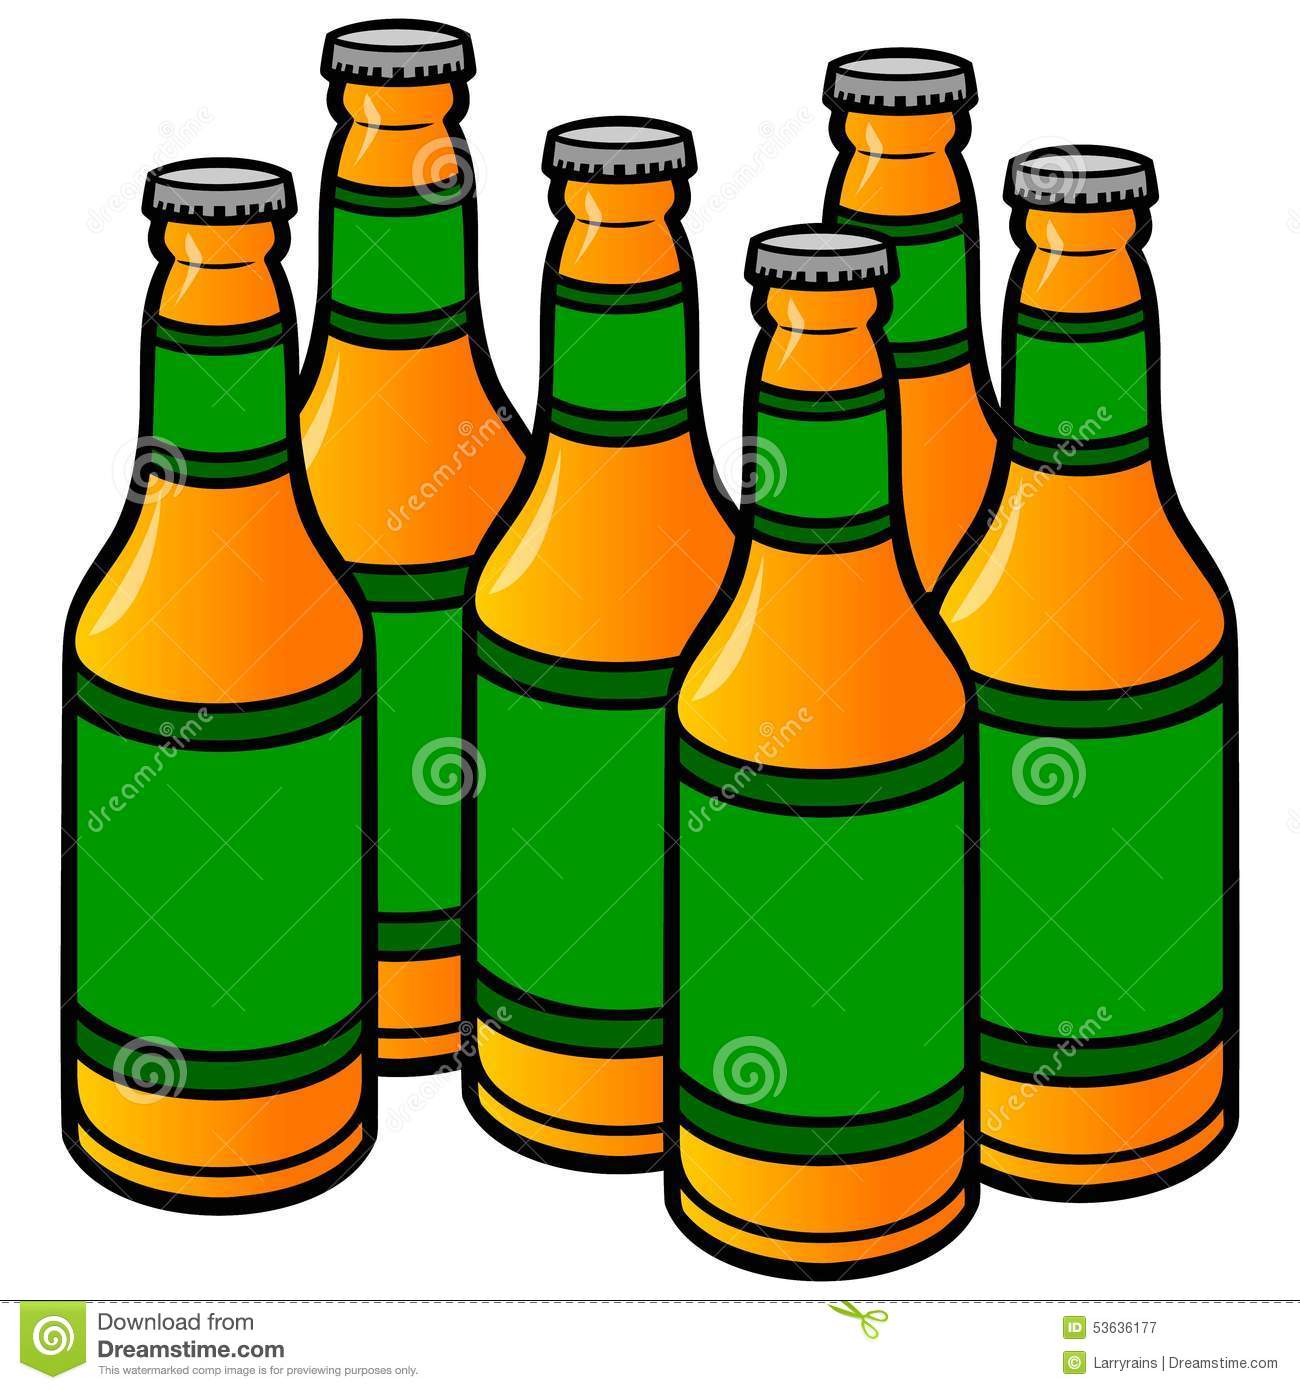 Beer Bottles Stock Vector - Image: 53636177